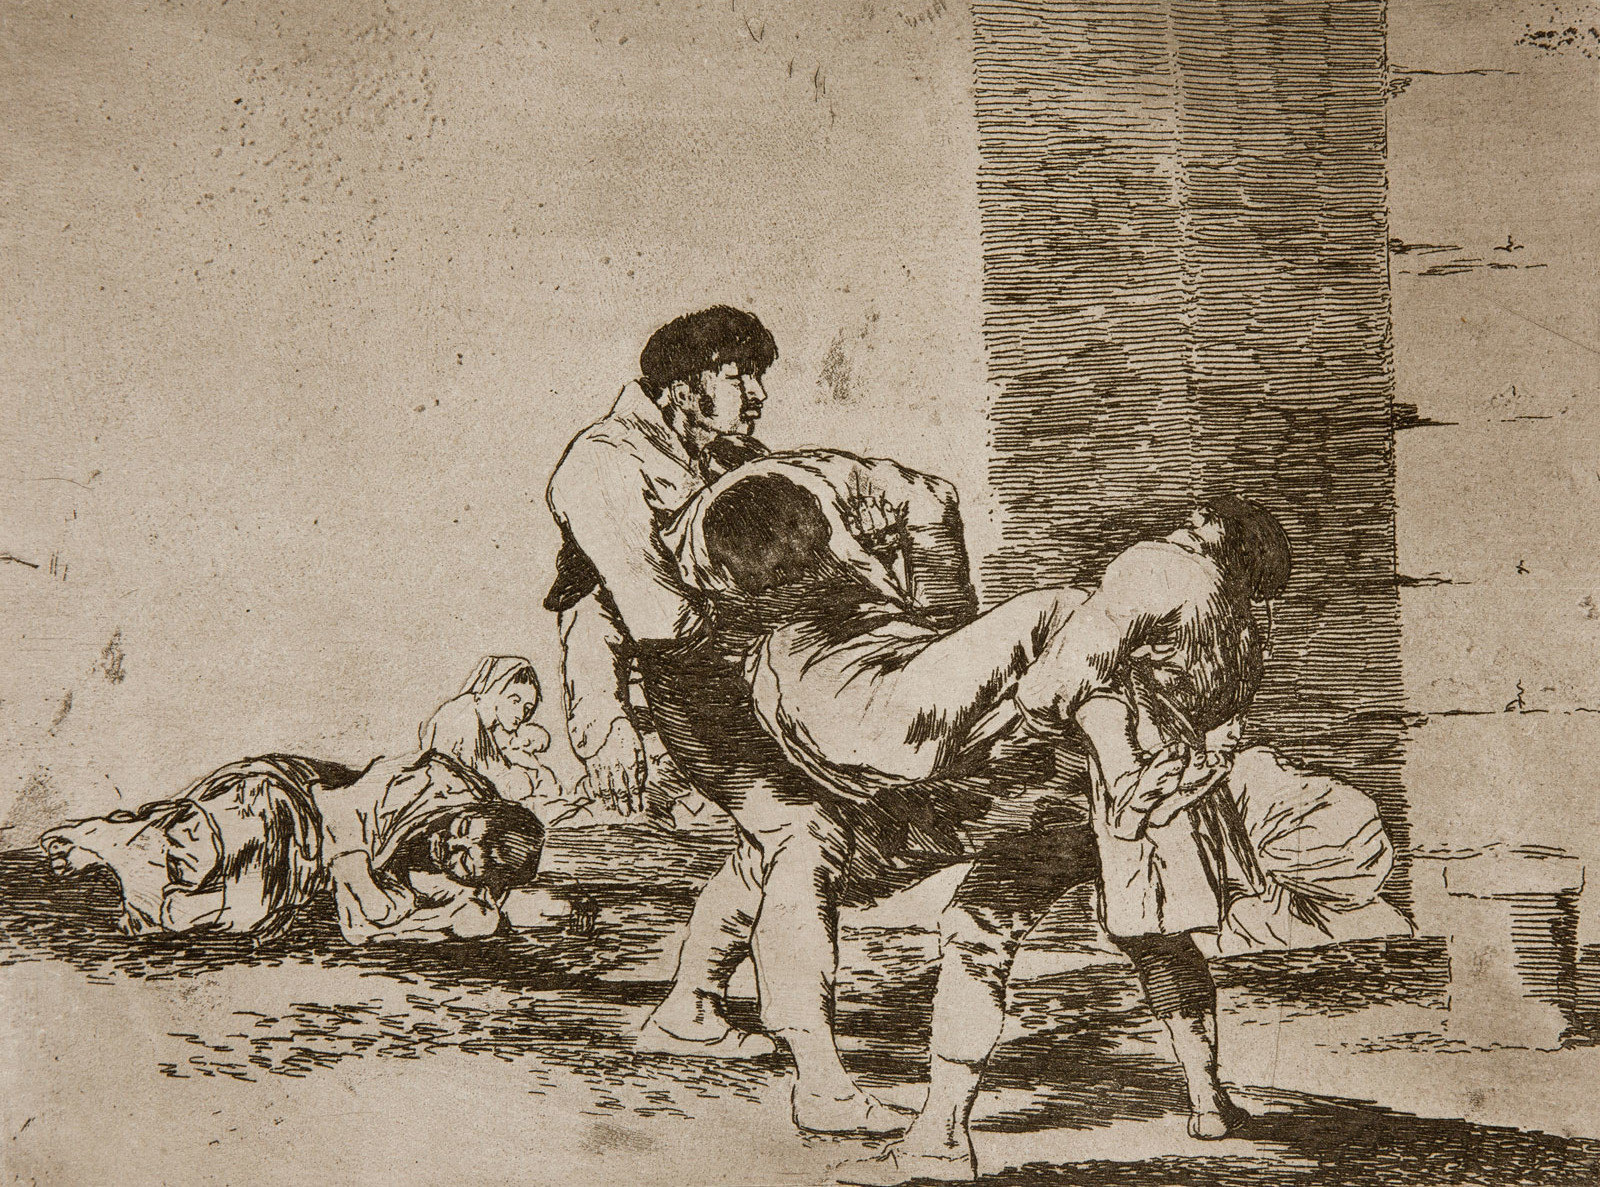 Francisco Goya: To the Cemetery, 1810-1820